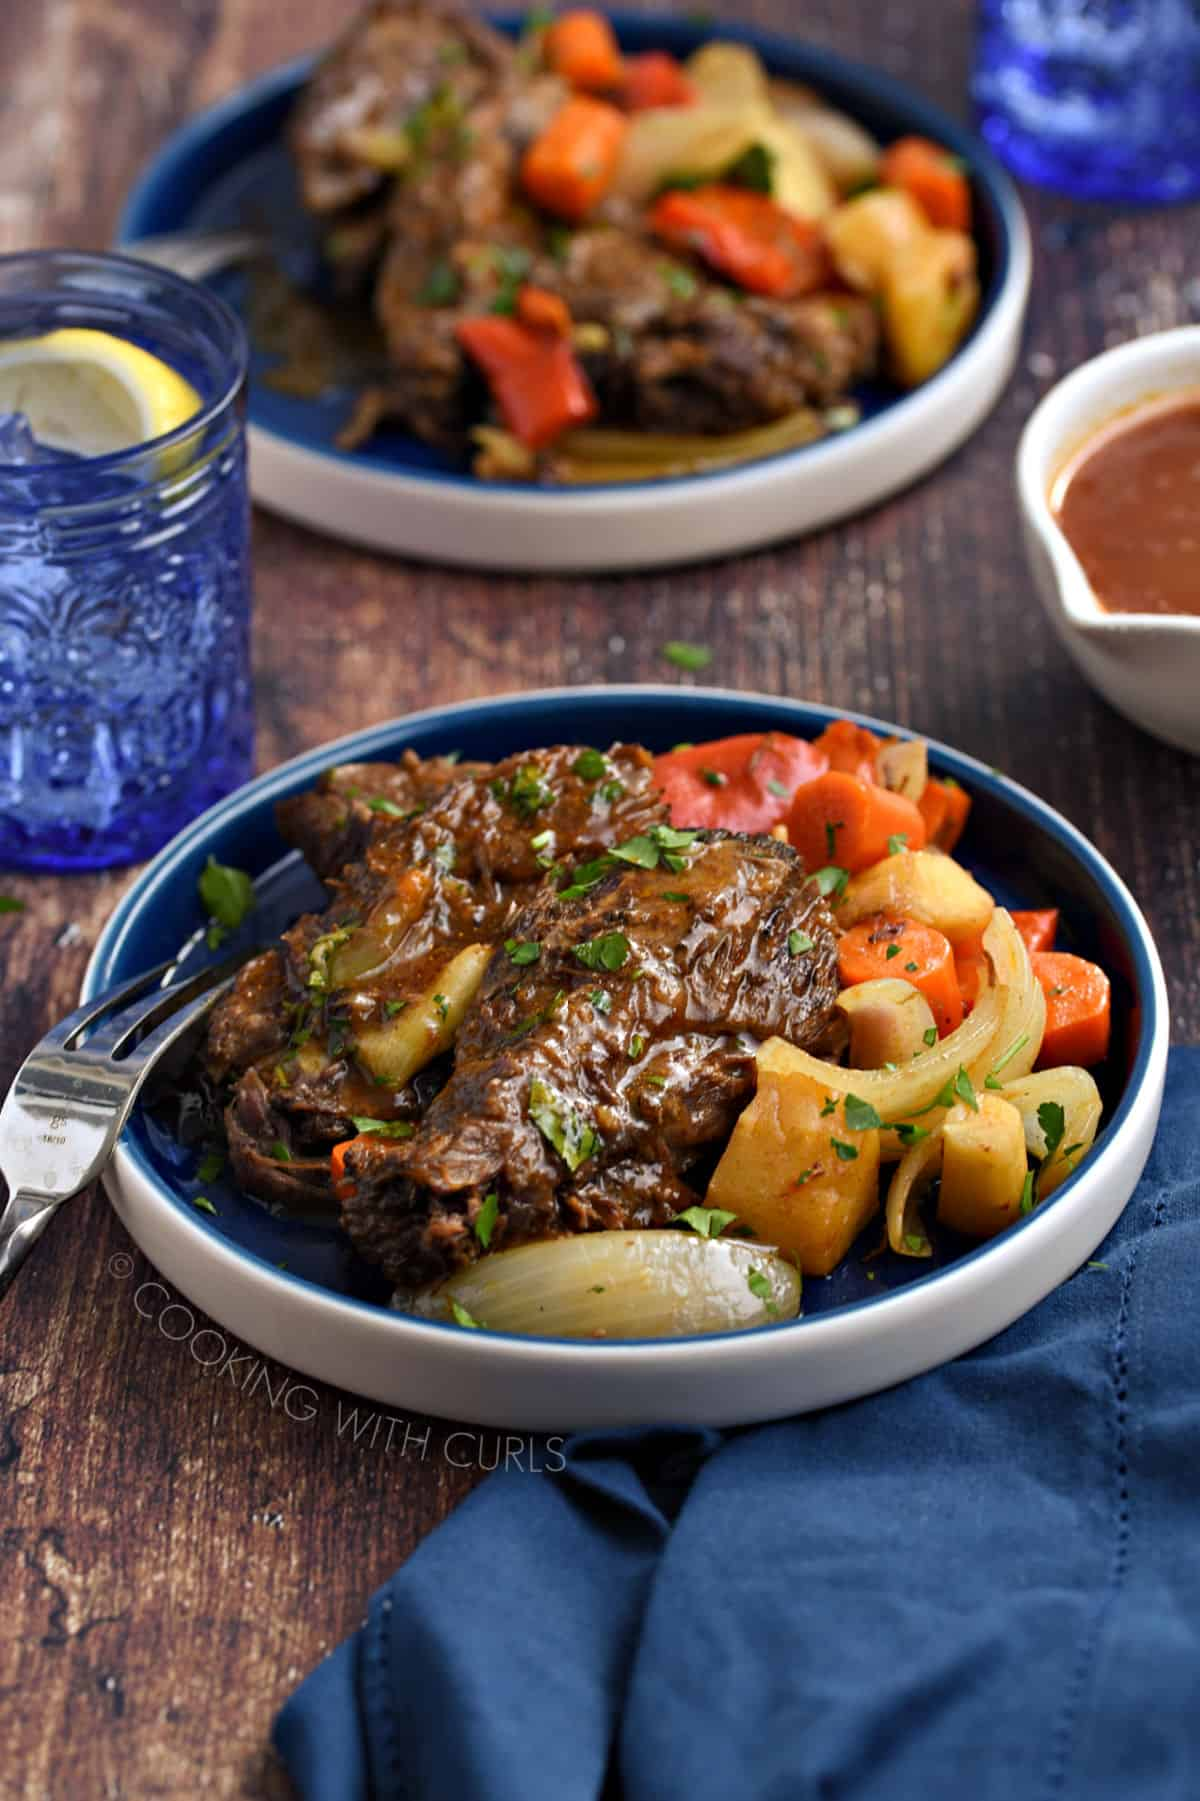 Pot roast topped with gravy and served with chopped red bell peppers, carrots, parsnips and onion wedges on a blue plate.